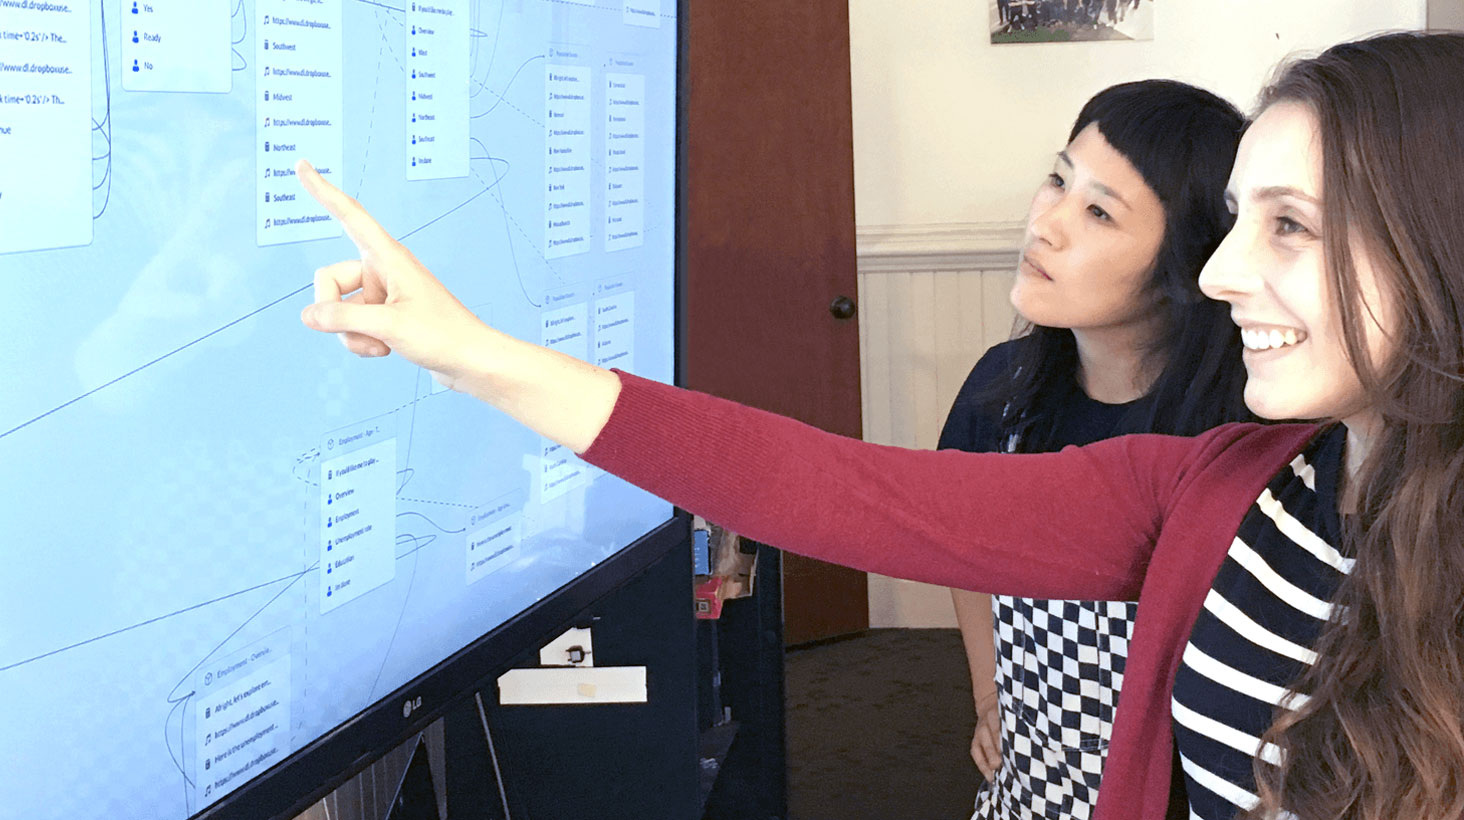 Image link to Auditory Data Design project. Two young women stand looking at a large screen; one is smiling and pointing